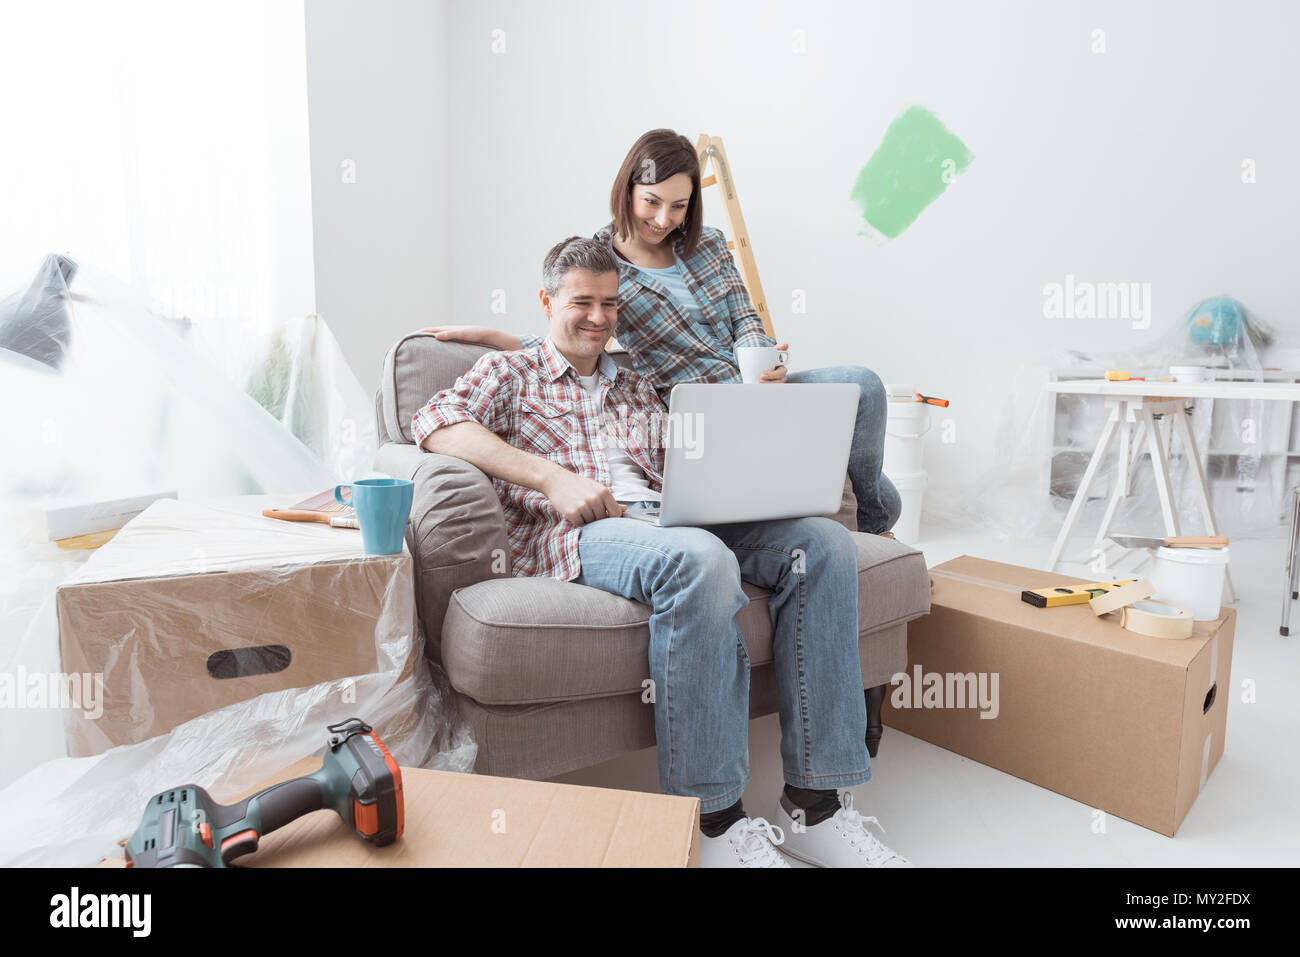 Happy couple moving into a new house and doing renovations, they are having a coffee break and connecting with a laptop - Stock Image